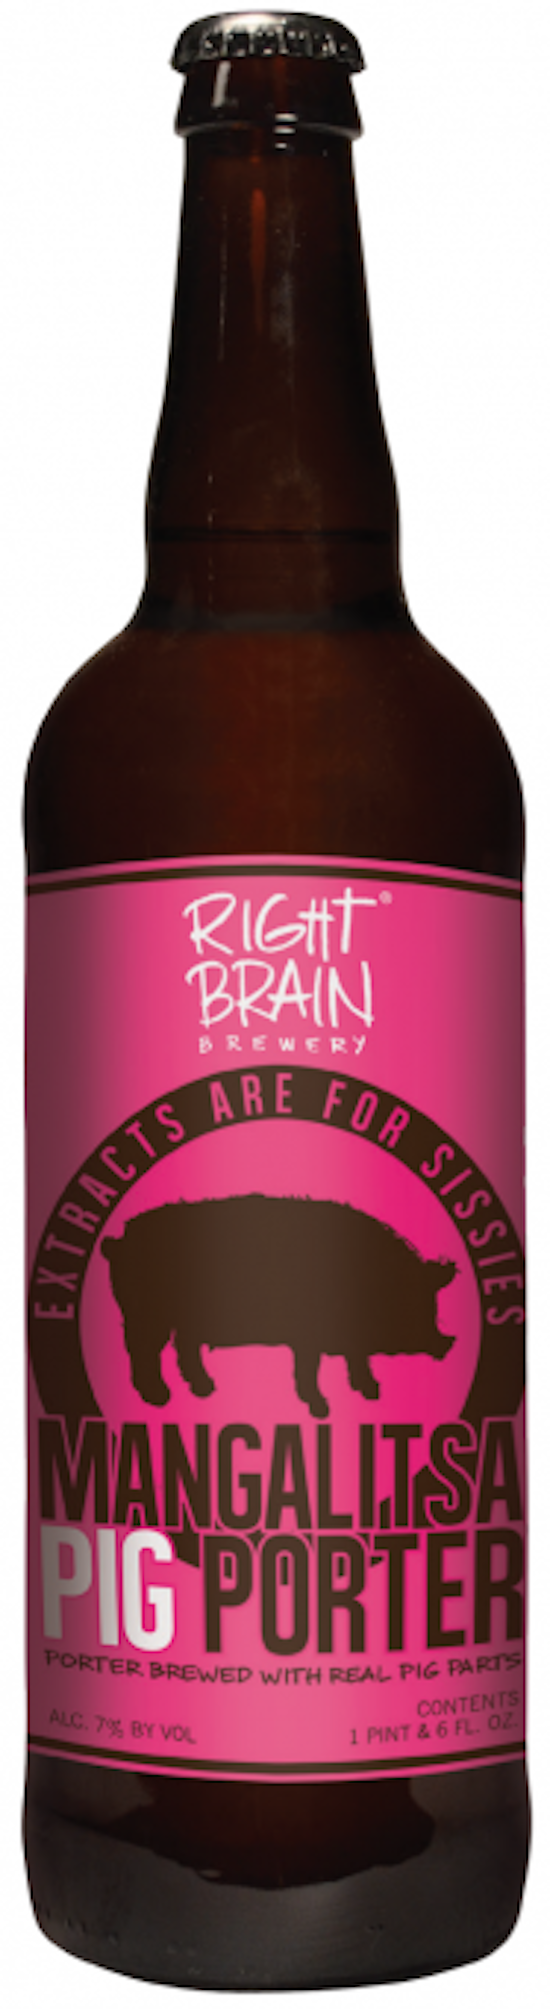 right-brain-brewery-mangalitsa-pig-porter_1518452848